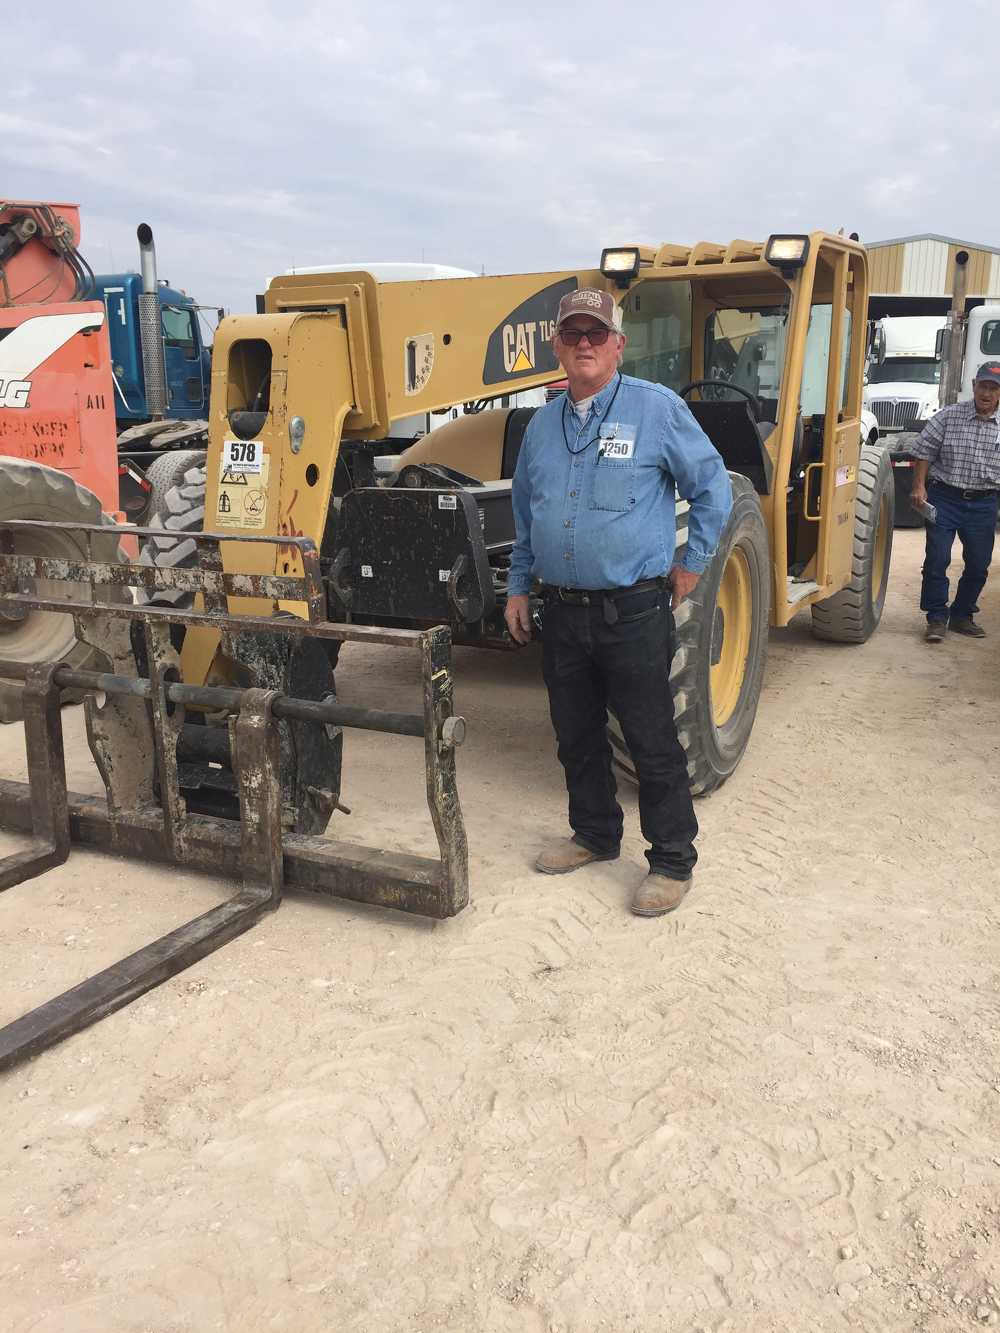 Lonnie Burcham, of Midland, Texas, looks over this 2007 Caterpillar TL642 telescopic forklift for sale in Stanton, Texas, on Sept. 13.